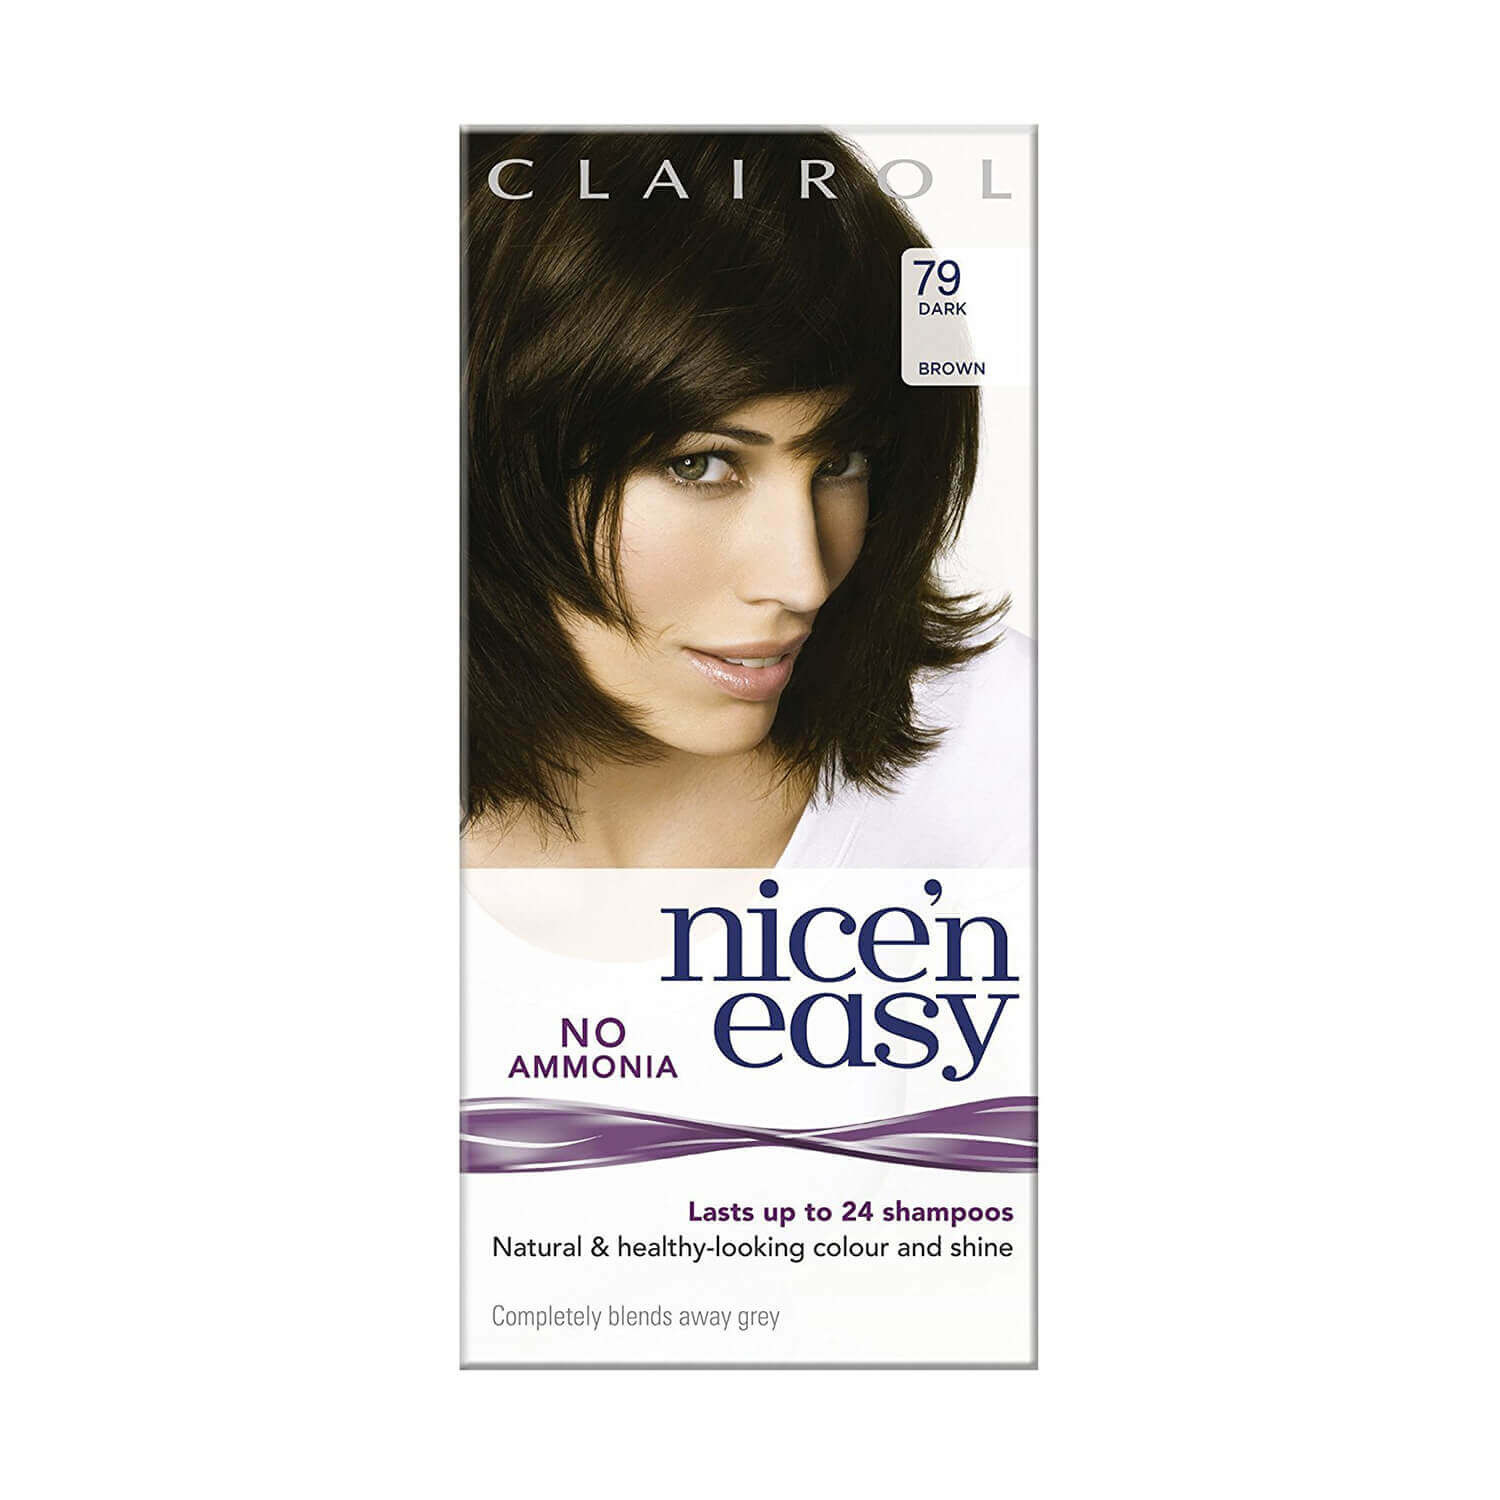 Image of Clairol Nice 'n Easy No Ammonia Hair Dye Dark Brown 79